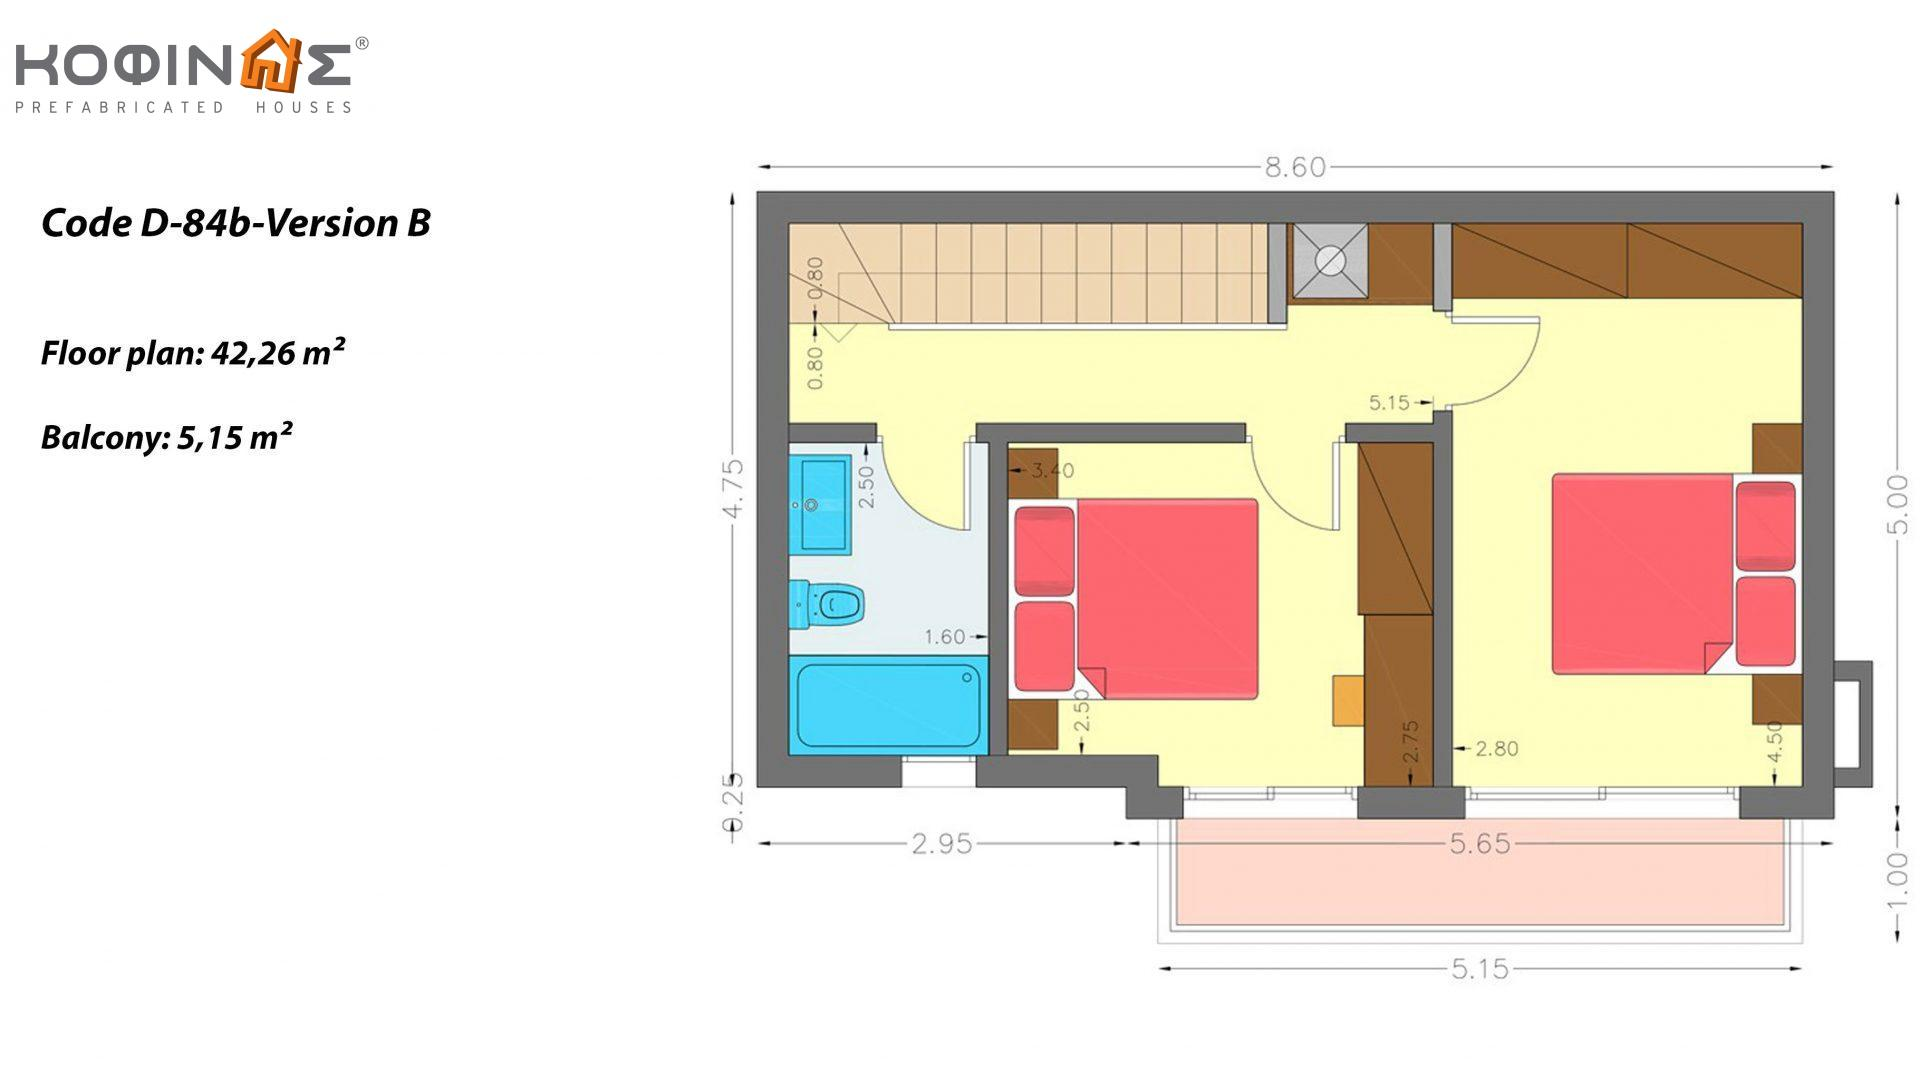 2-story house D-84b, total surface of 84,52 m²,roofed areas 5.15 m²,balconies 5.15 m²